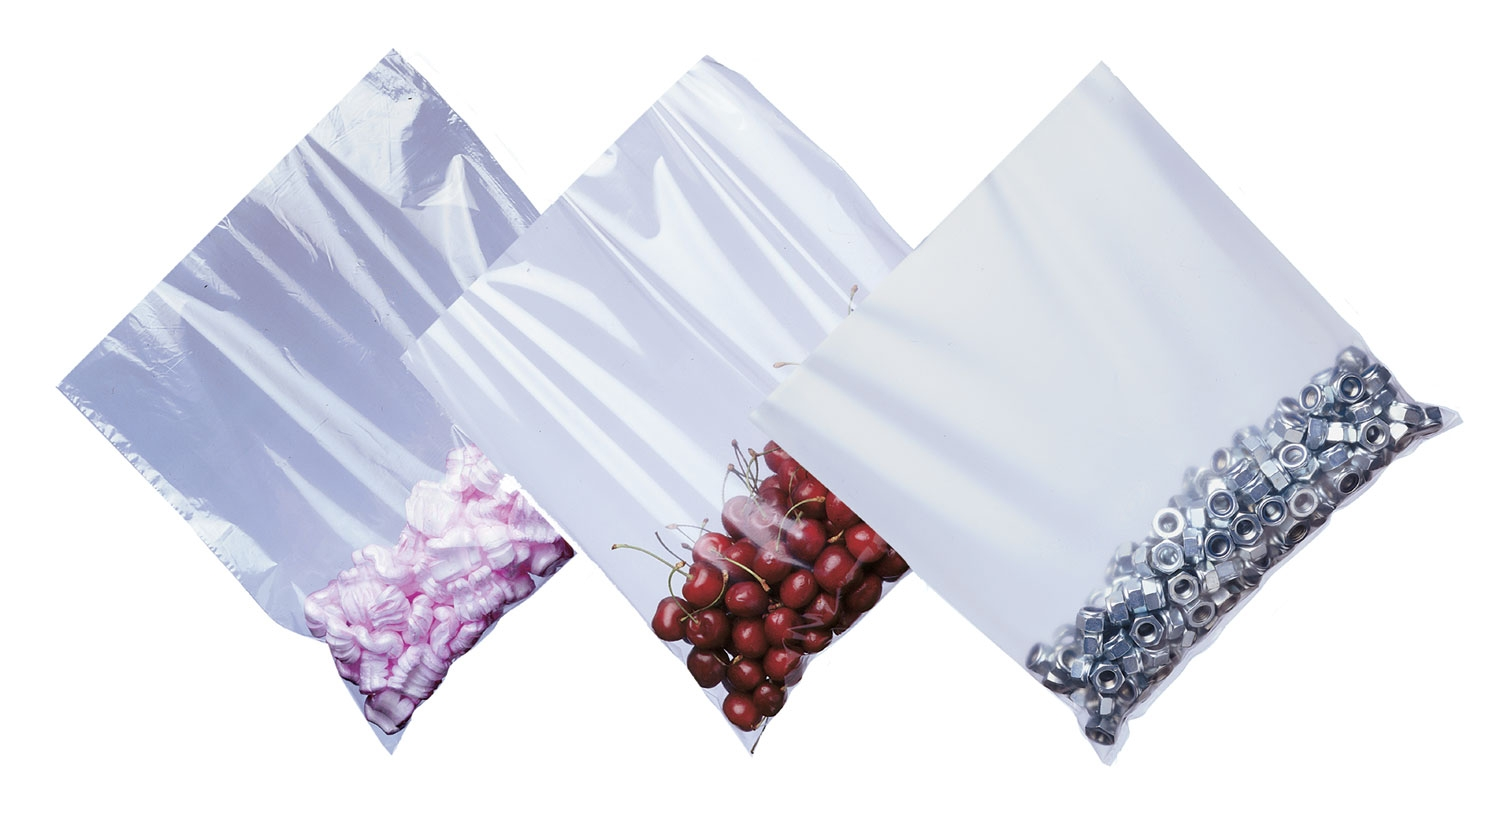 24inch X 36inch Lightweight Clear Easy Opening Poly Bags